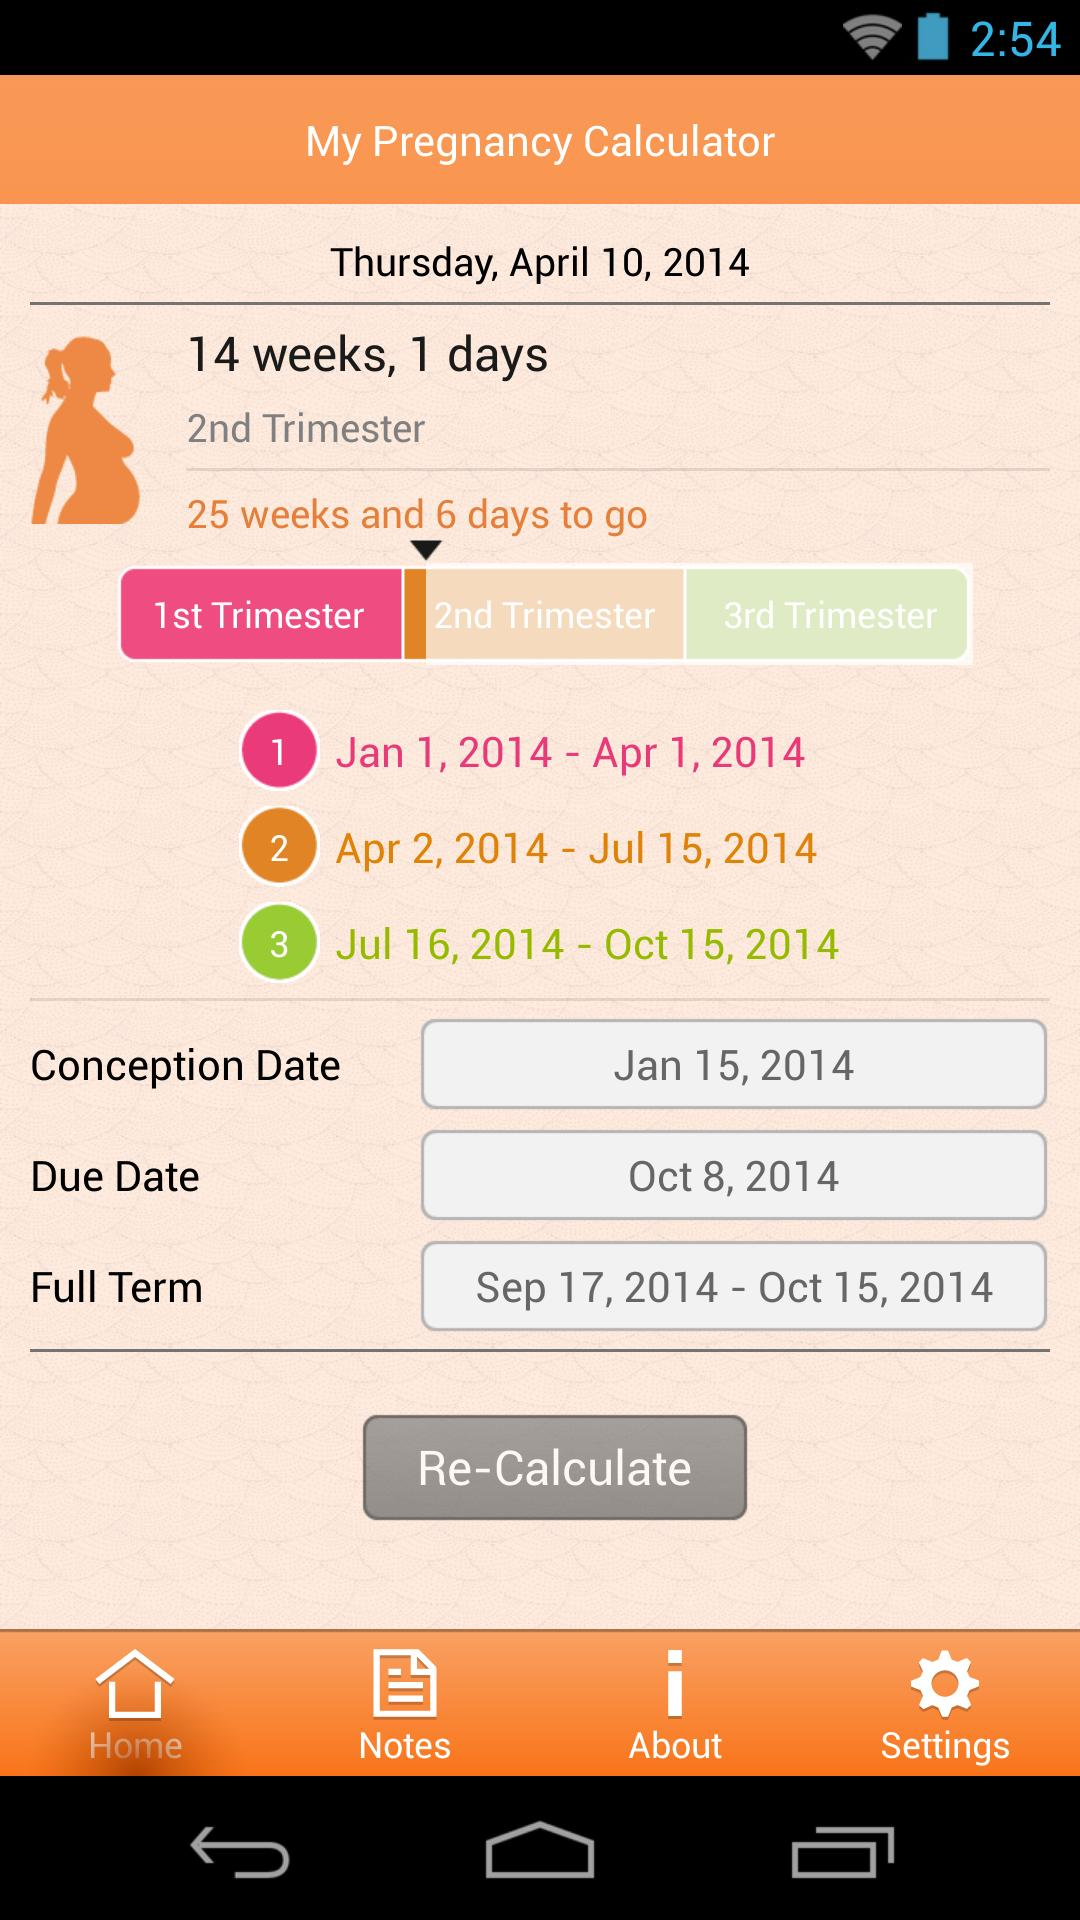 My Pregnancy Calculator for Android - APK Download